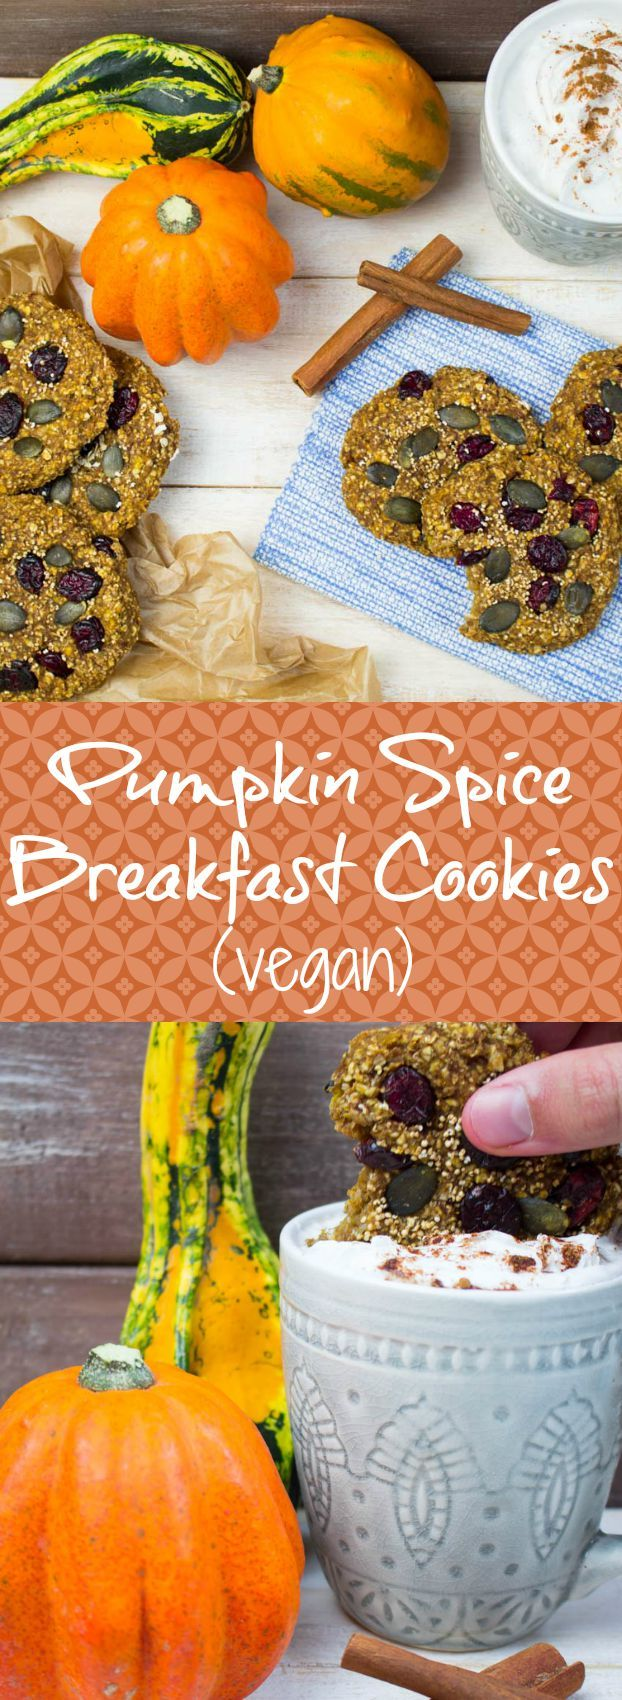 These pumpkin spice breakfast cookies with cranberries are not only super delicious but also packed with essential nutrients. #vegan #cookies #pumpkin #pumpkinspice @veganheavenorg